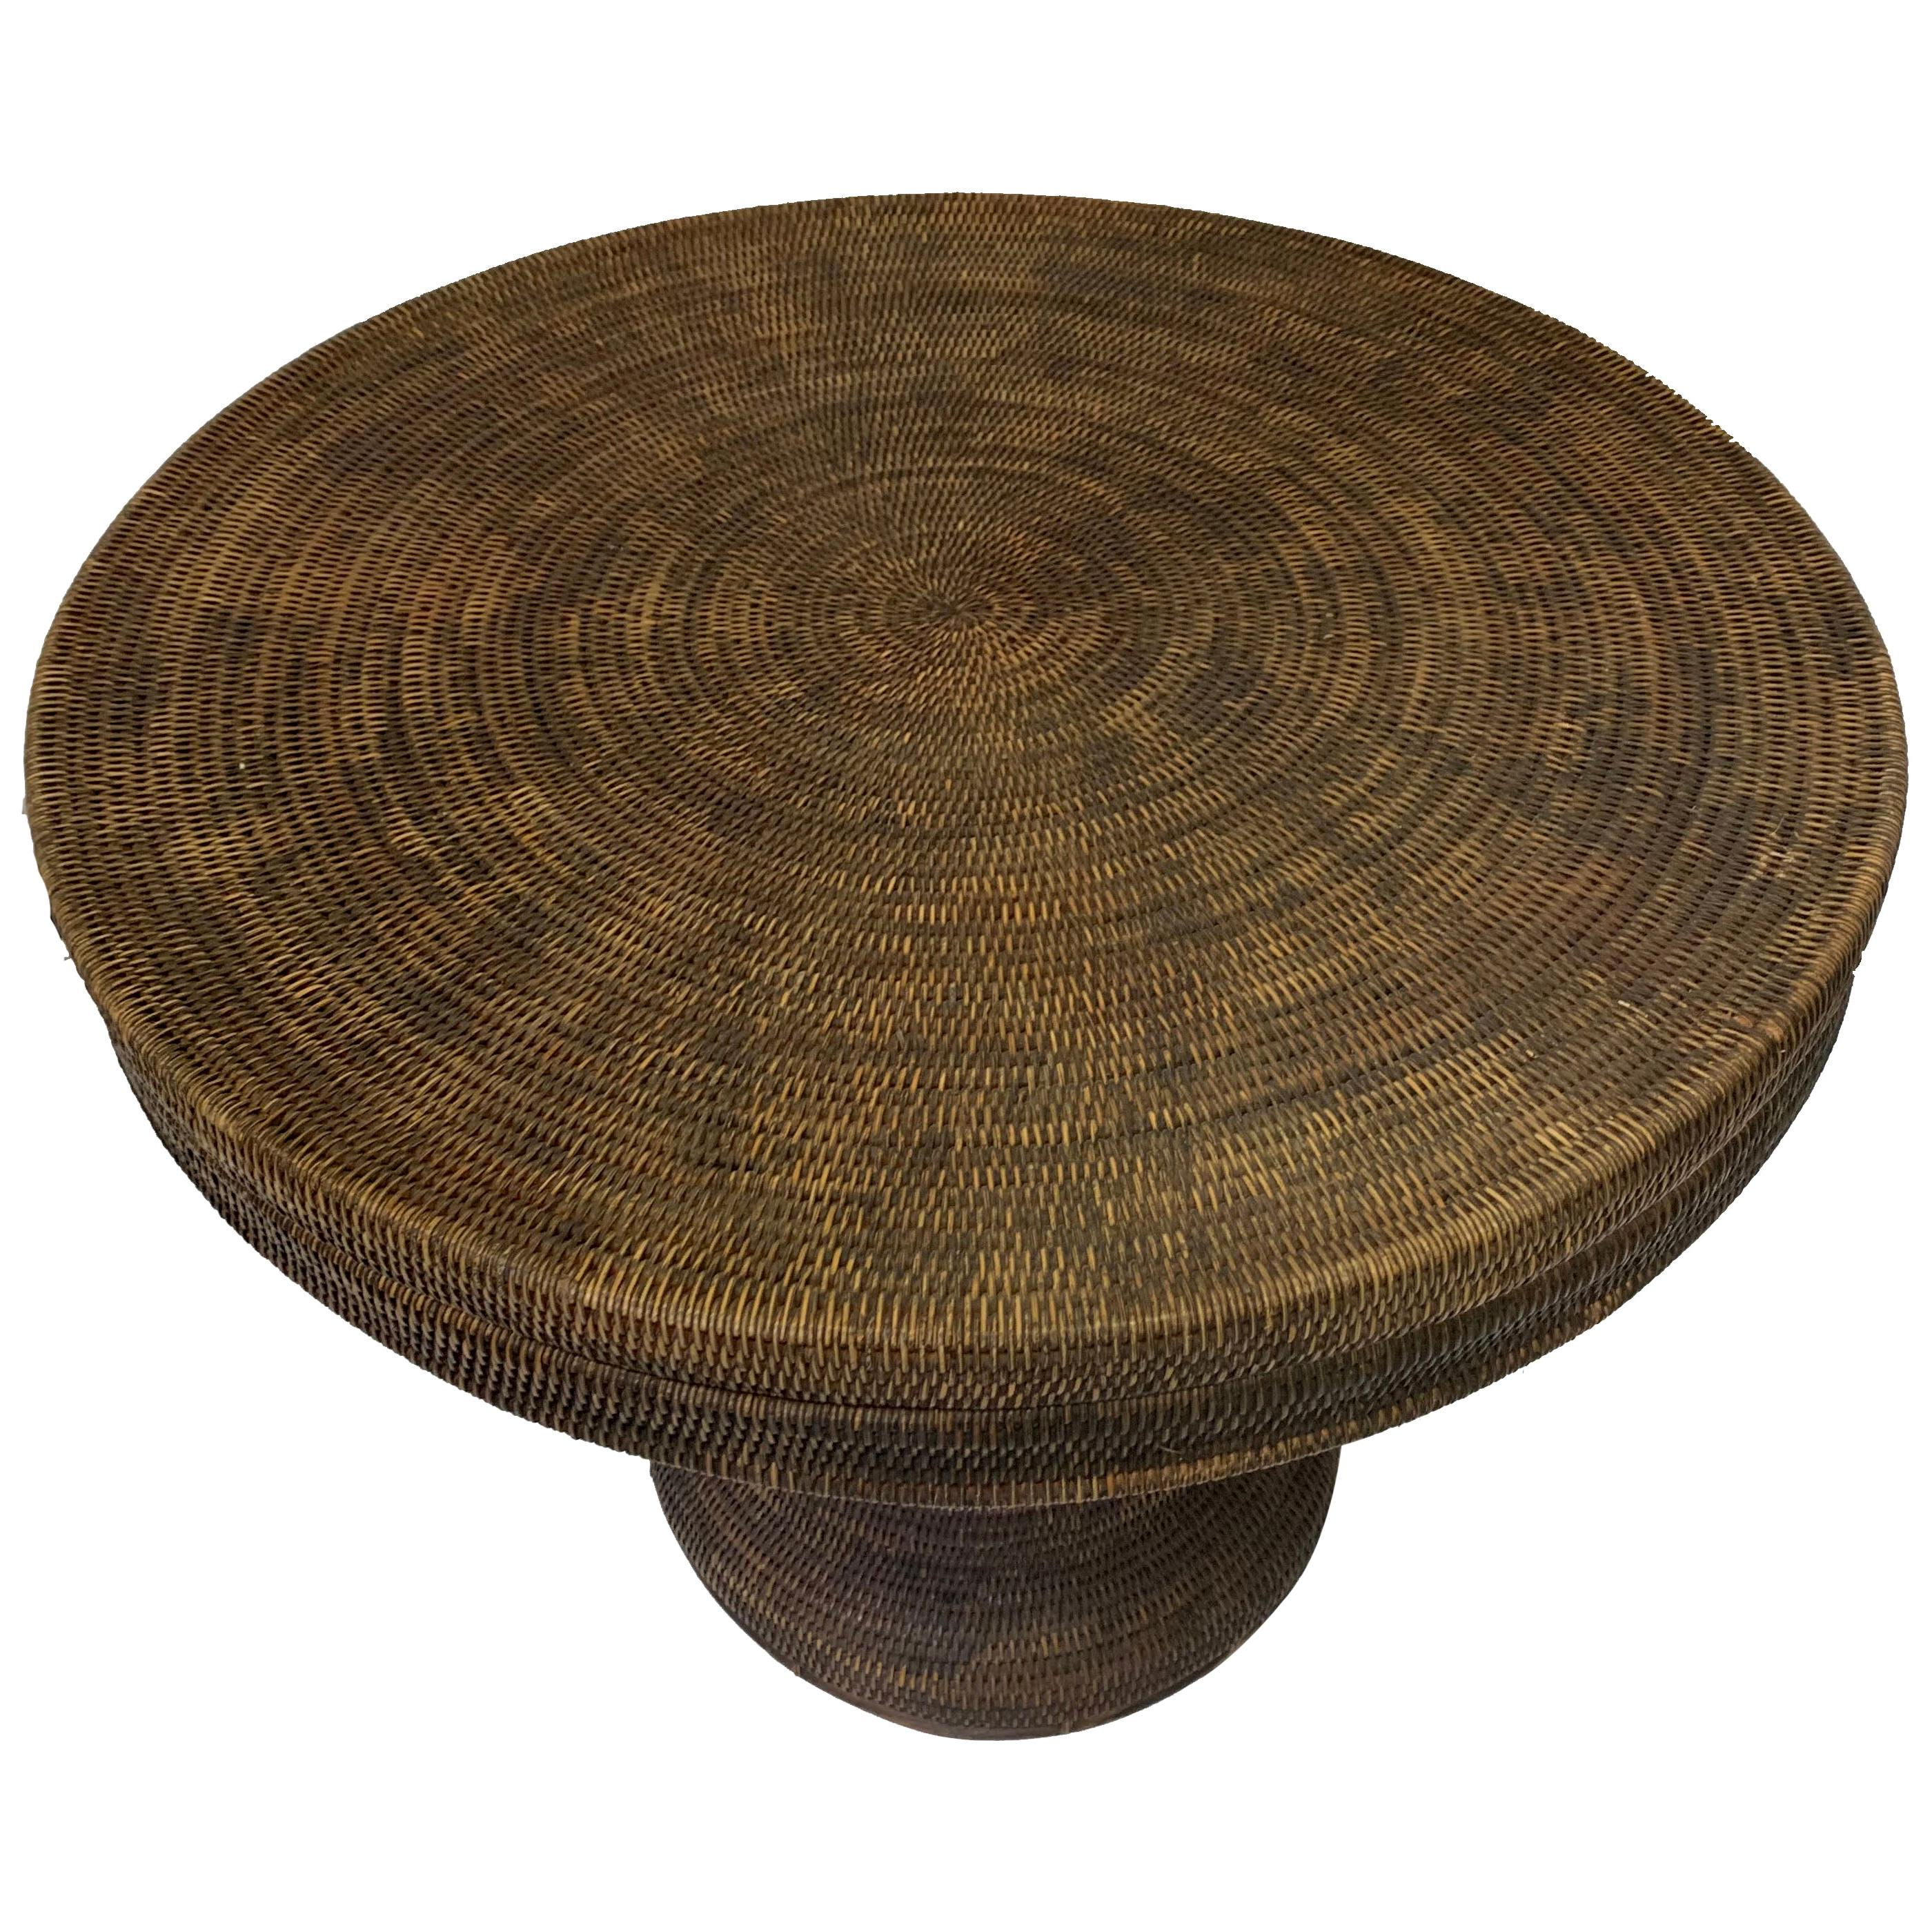 Hand Woven Basket or Side Table with Hand Carved Details